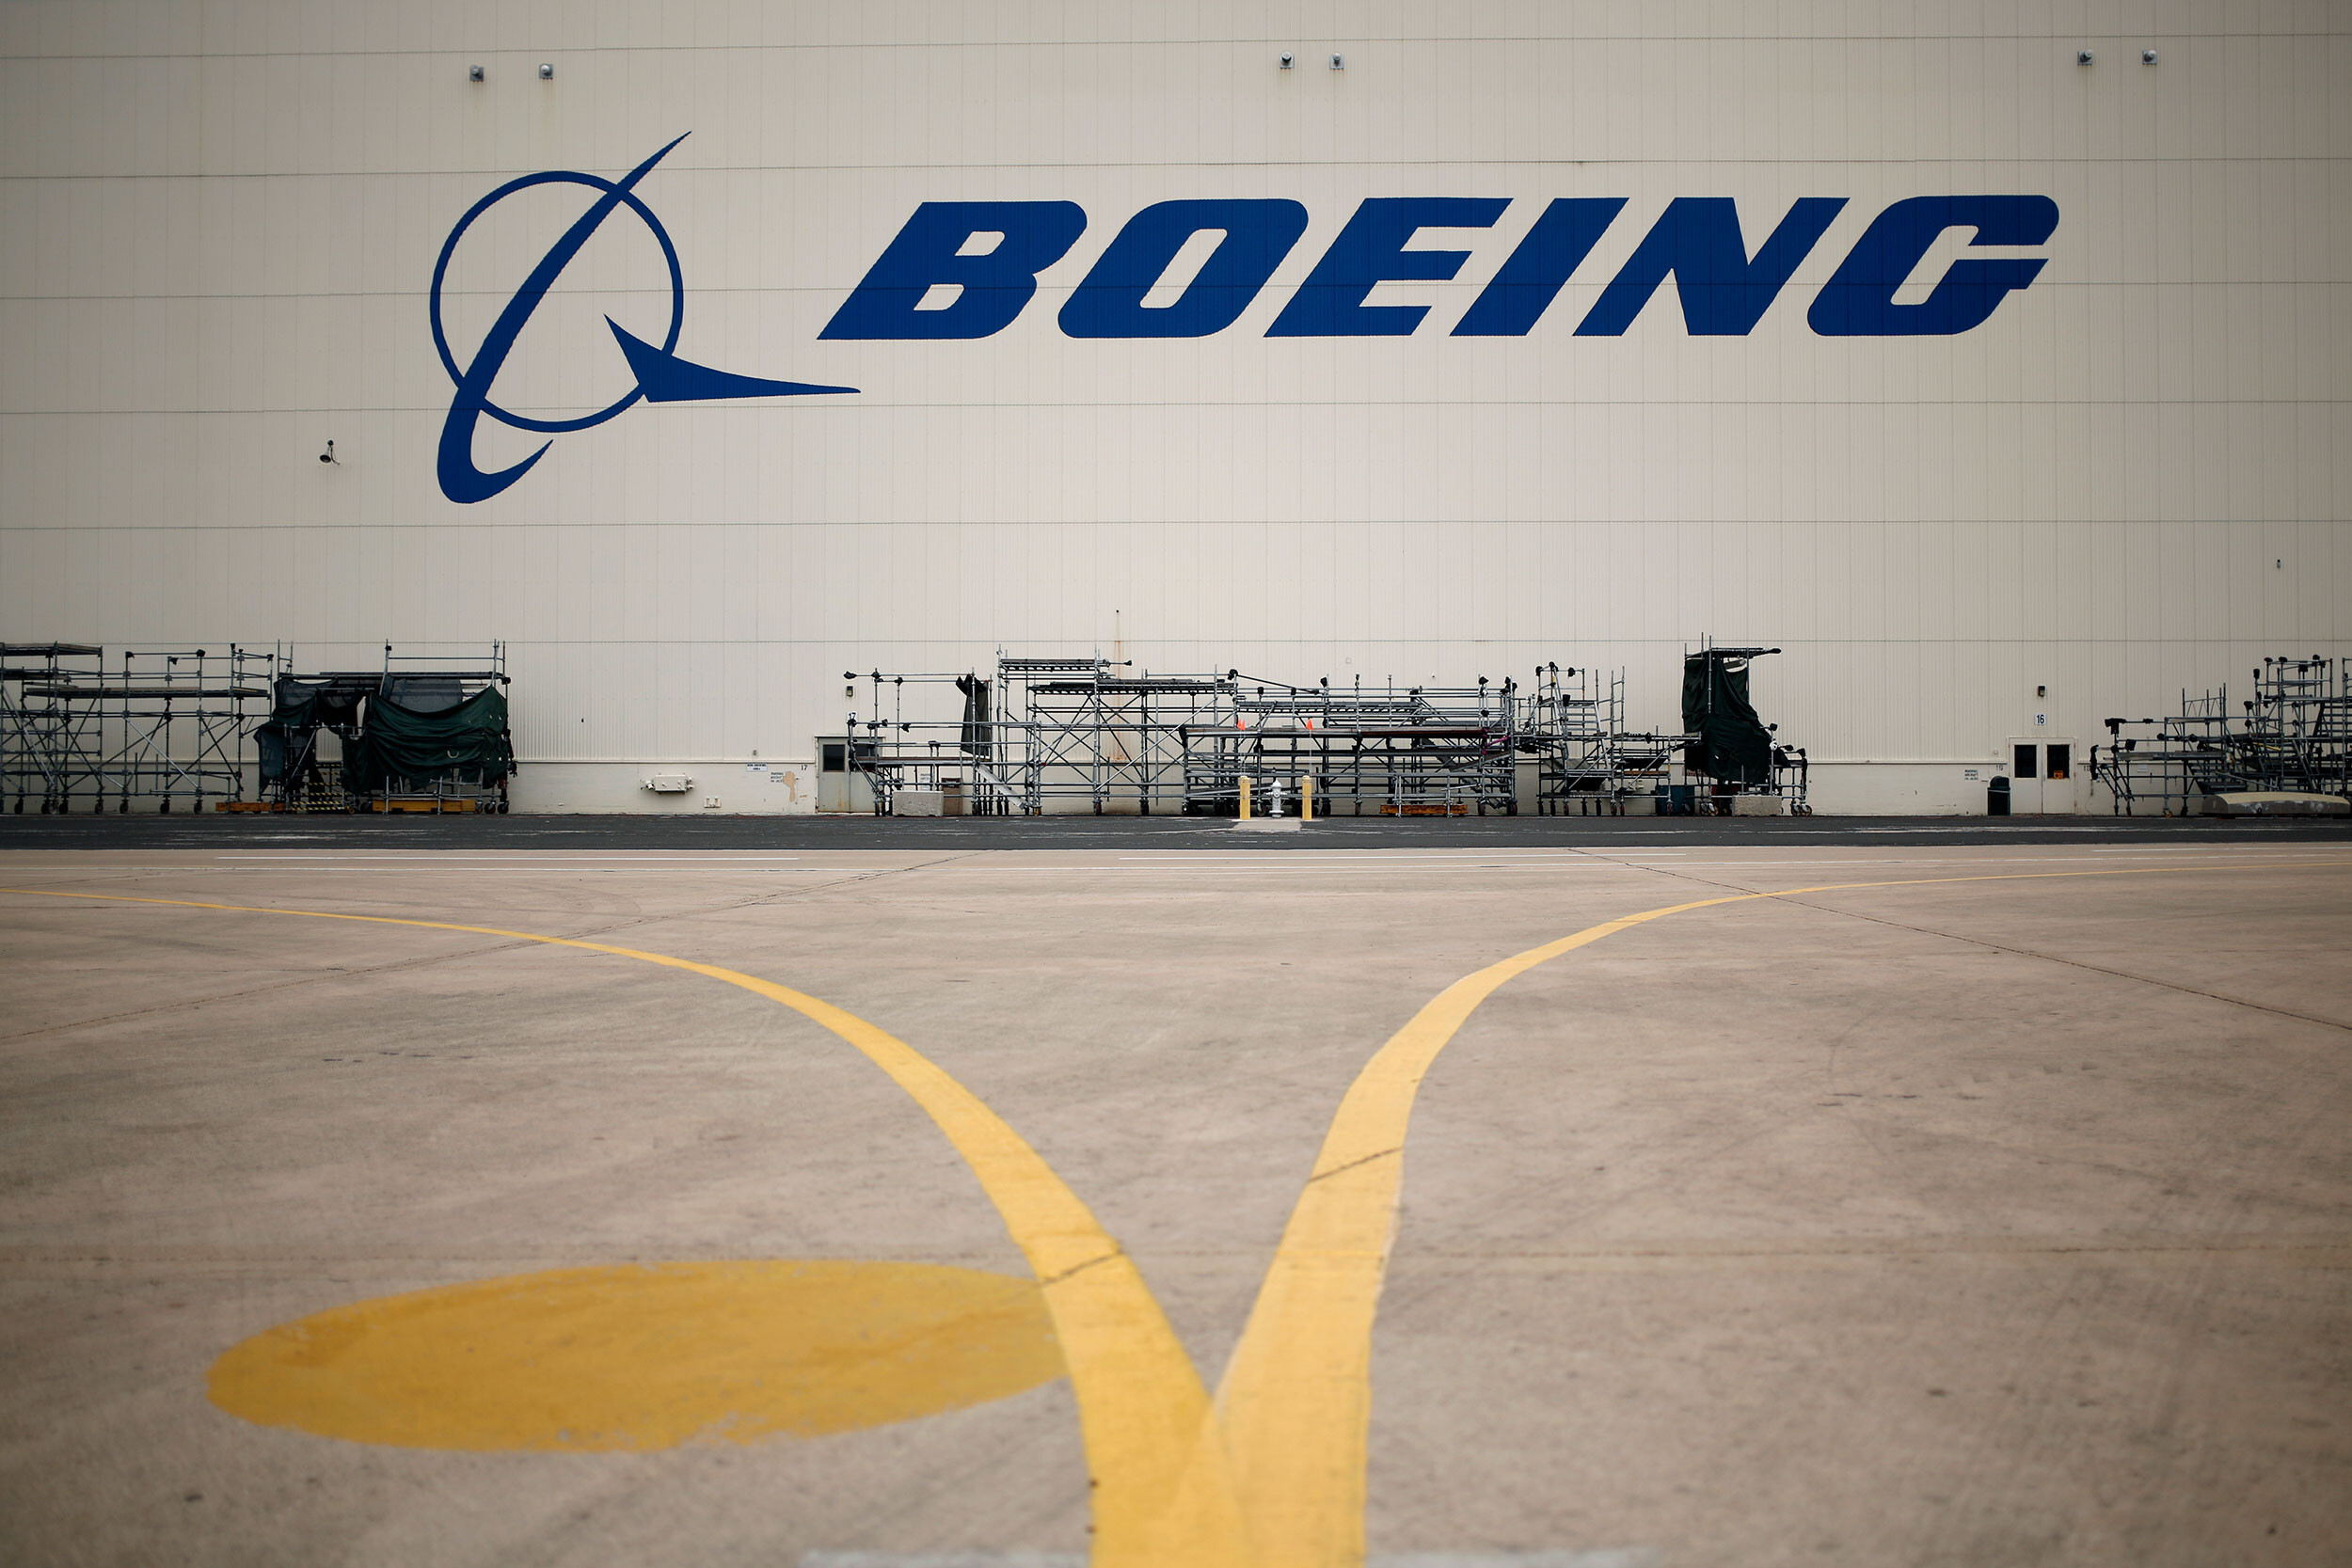 <i>Luke Sharrett/Bloomberg/Getty Images</i><br/>Boeing is reportedly investigating two small